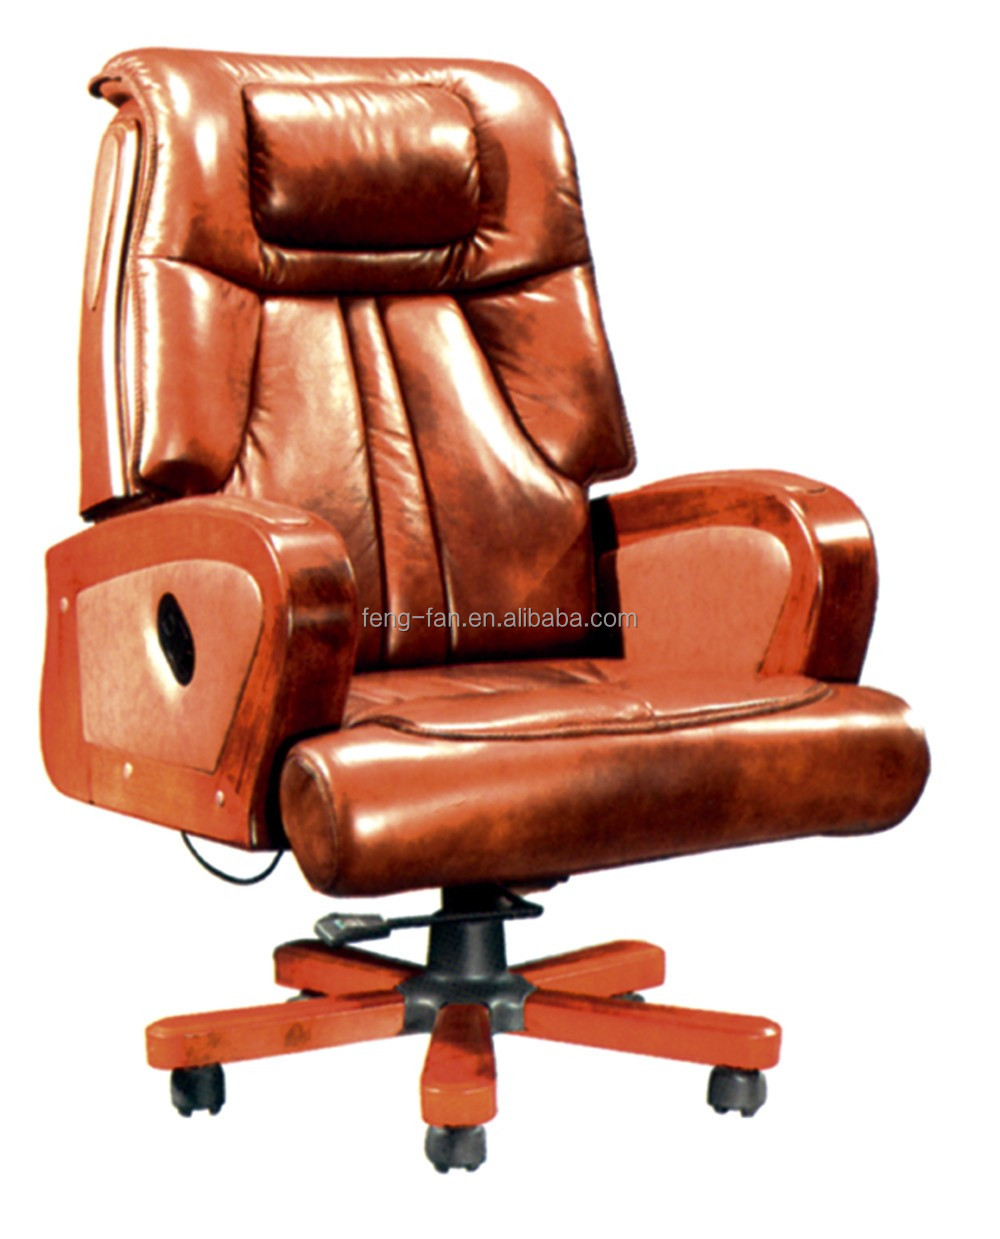 High end Synthetic and genuine leather CEO office swivel lift chair recliner chairs on sale